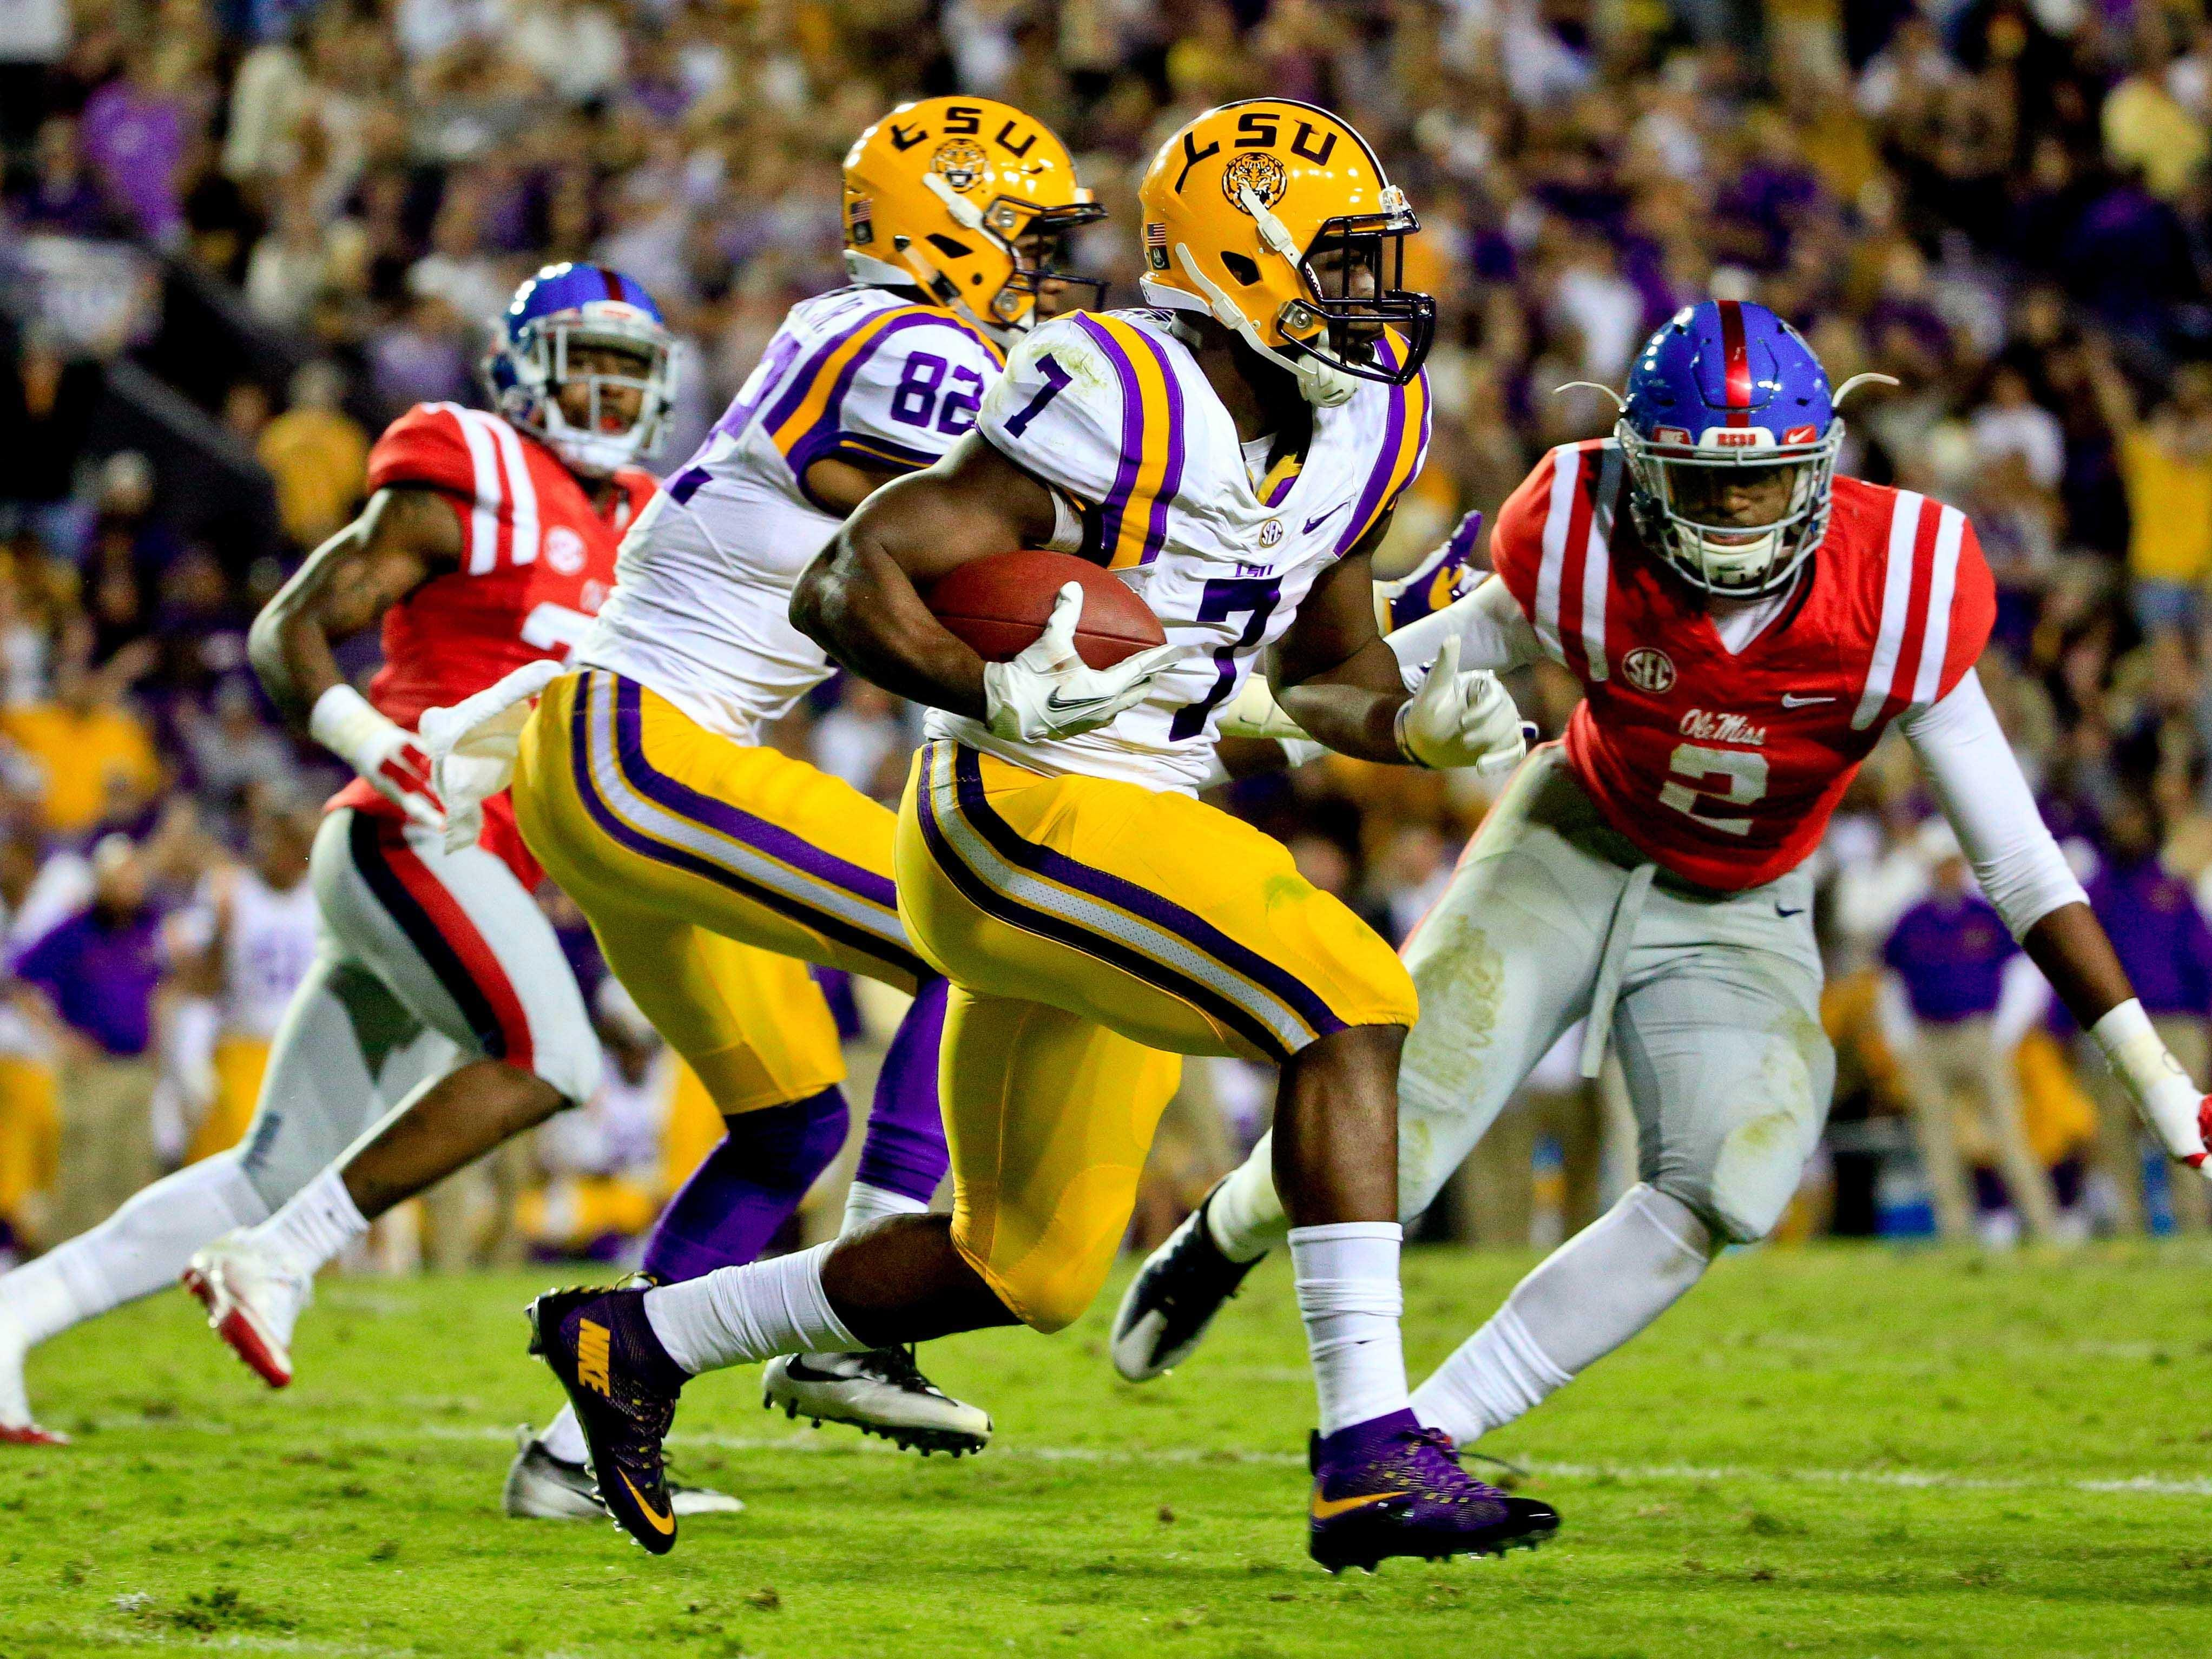 LSU Tigers running back Leonard Fournette (7) runs for a touchdown against the Ole Miss Rebels during the second quarter of a game at Tiger Stadium.